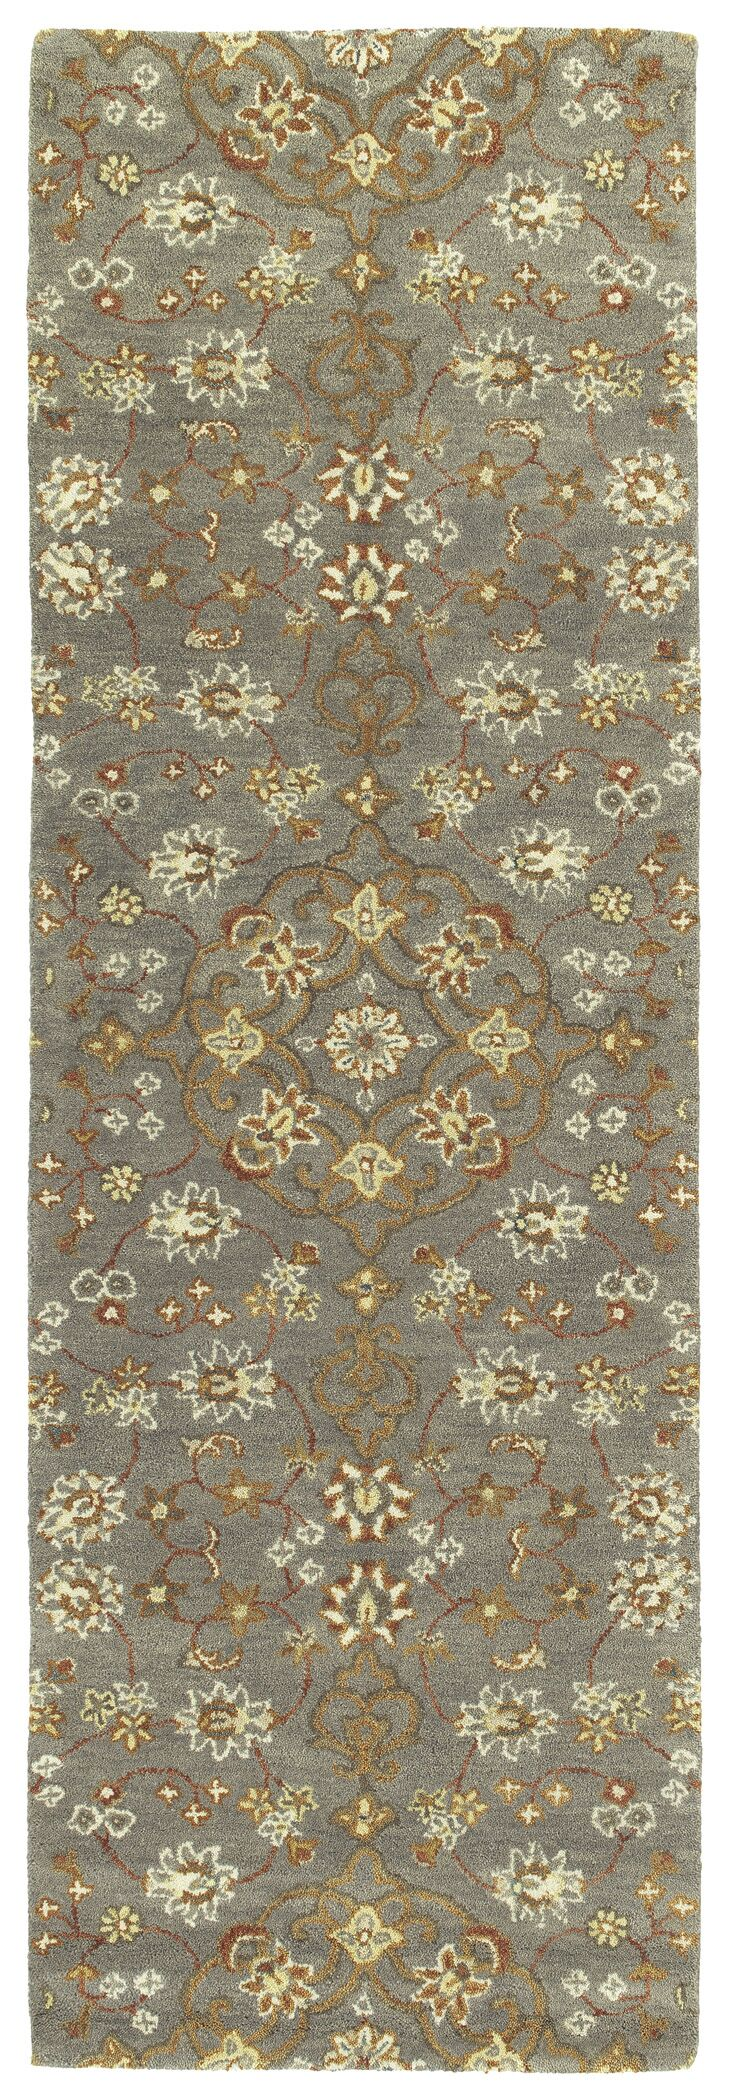 Fischer Hand-Tufted Pewter Green Area Rug Rug Size: Rectangle 10' x 14'